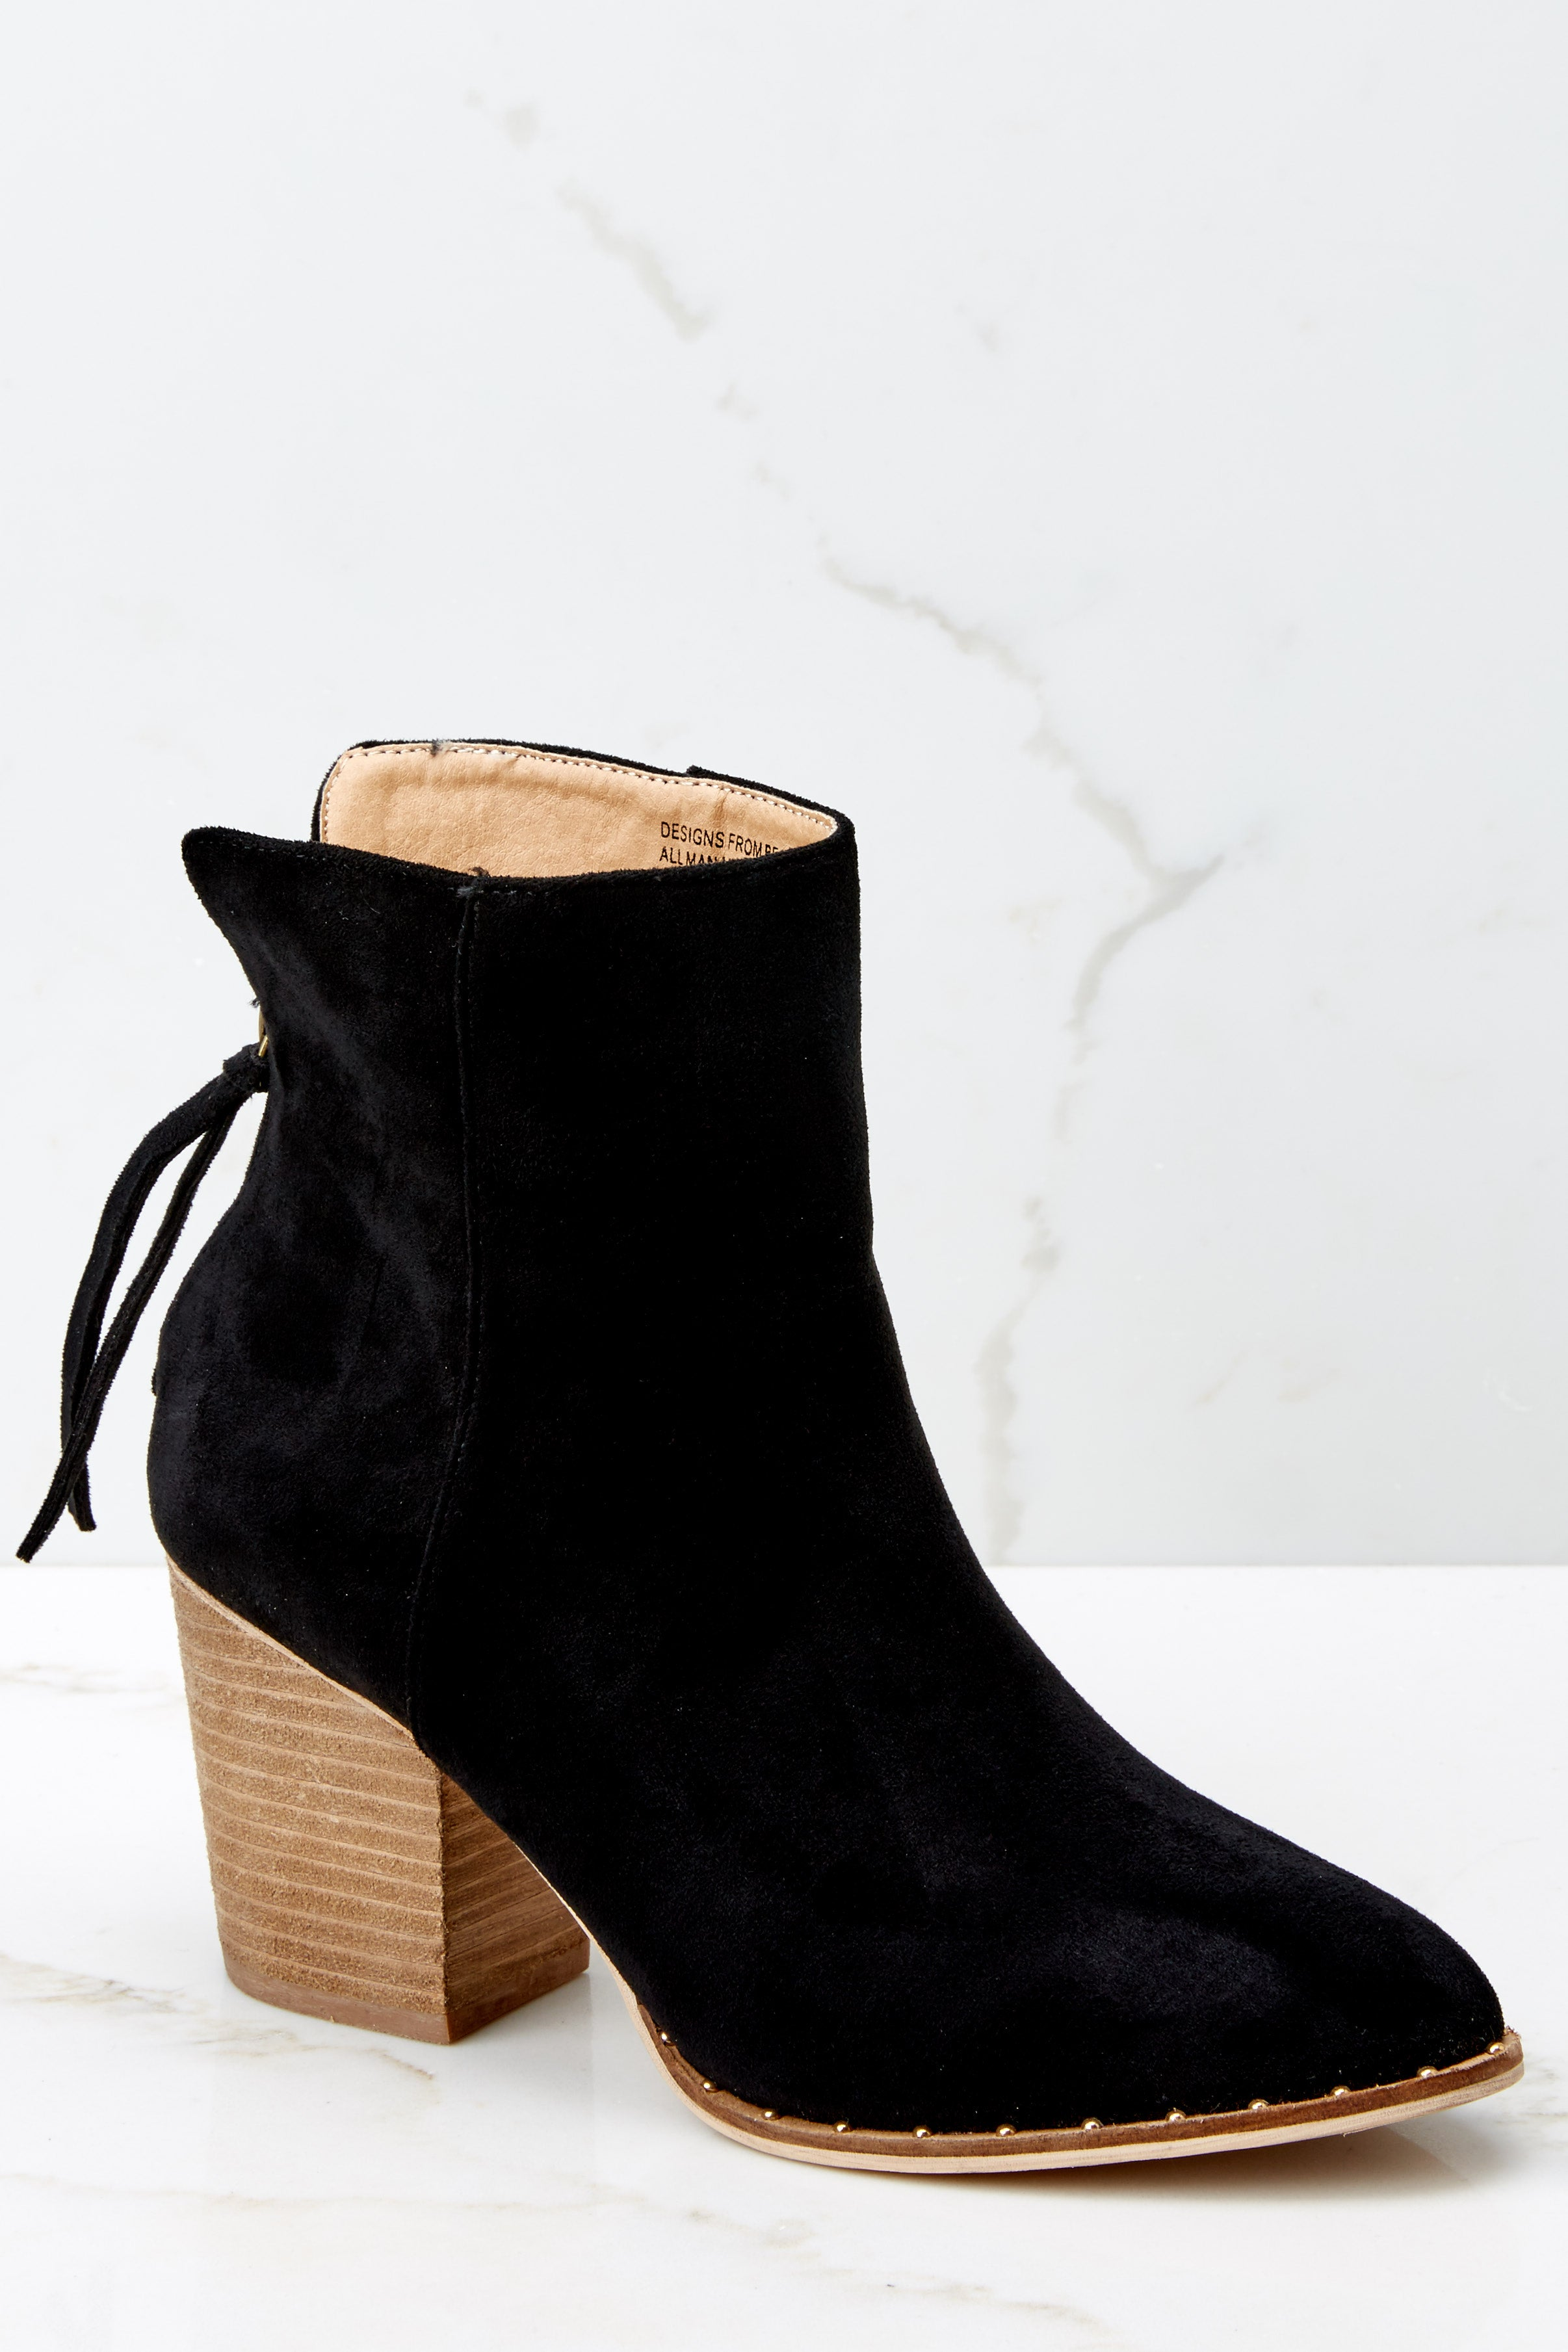 2 Taking These With Me Black Ankle Booties at reddress.com